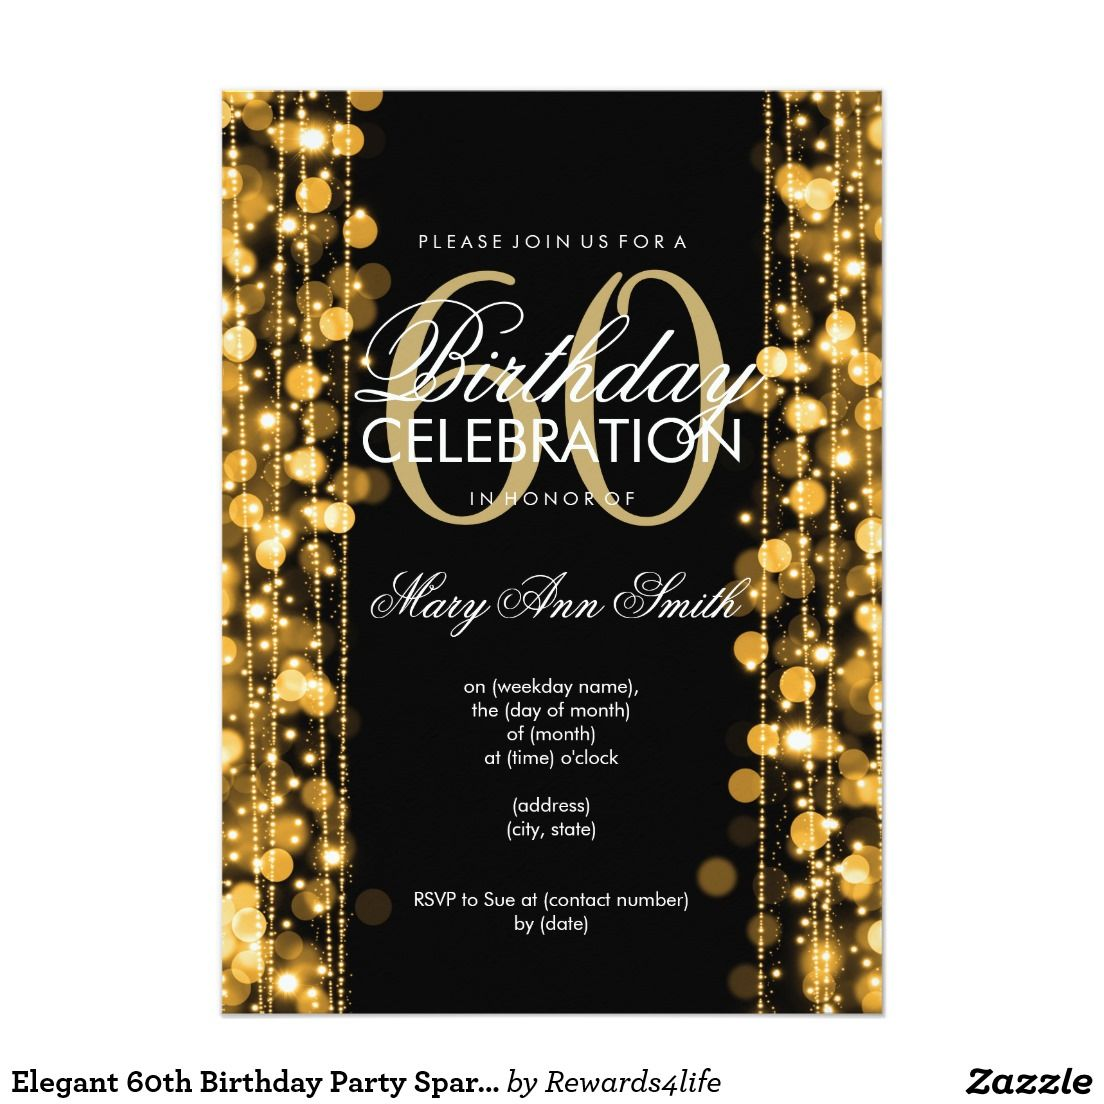 Elegant 60th Birthday Party Sparkles Gold Card | Elegant, Artwork ...